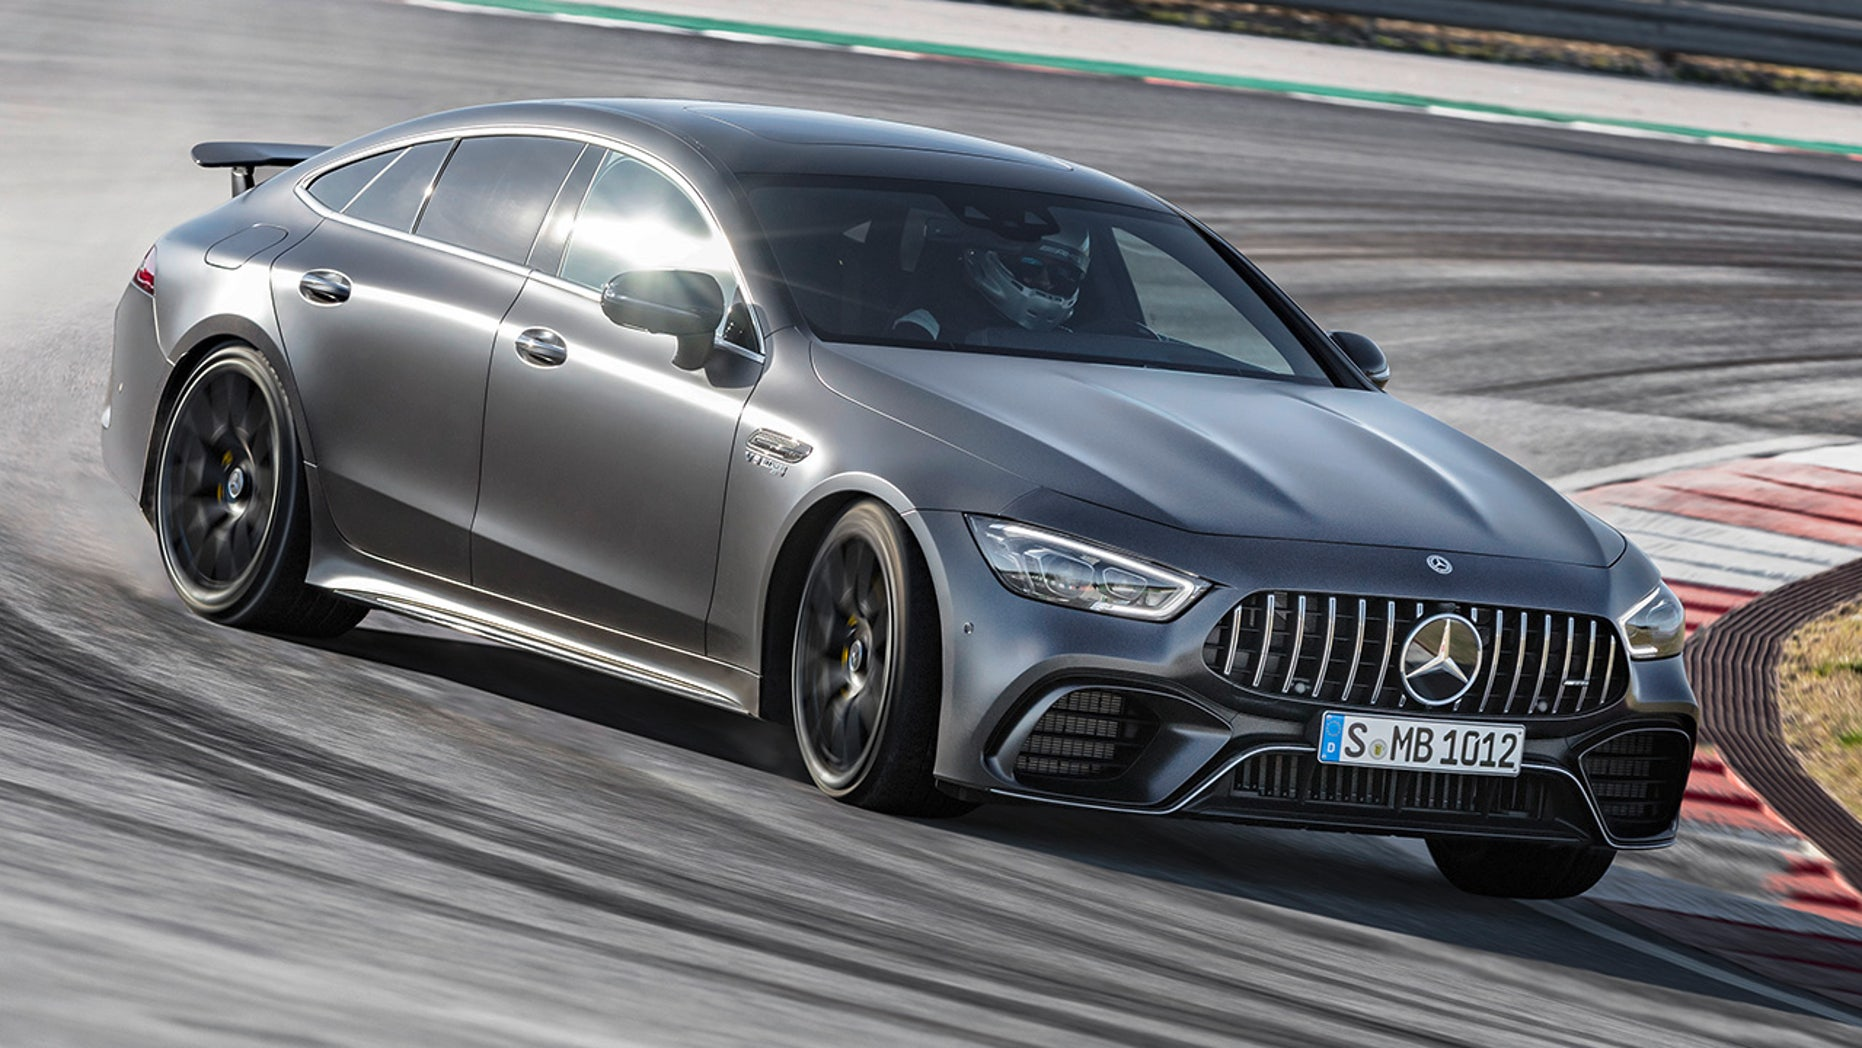 The Mercedes Amg Gt 4 Door Coupe Smells Like Speed Fox News